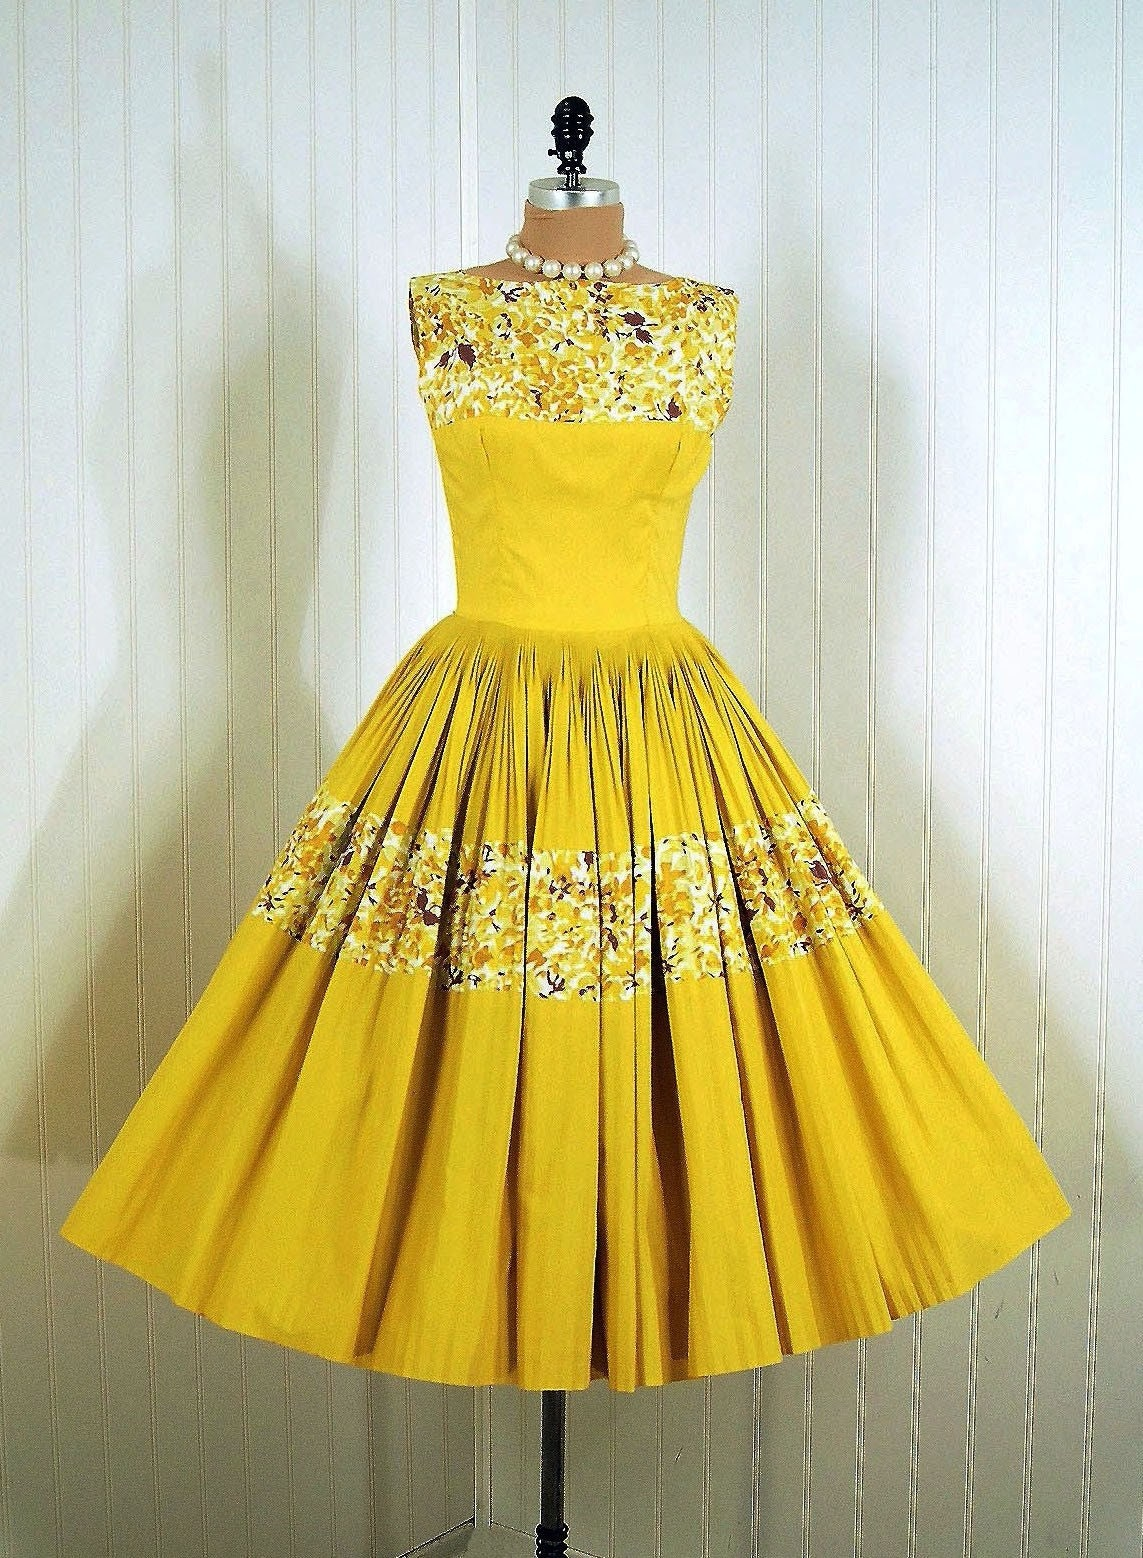 1950's Vintage Suzy Perette Designer Couture Yellow-Floral Garden Bombshell Pleated Circle-Skirt Party Sun Dress